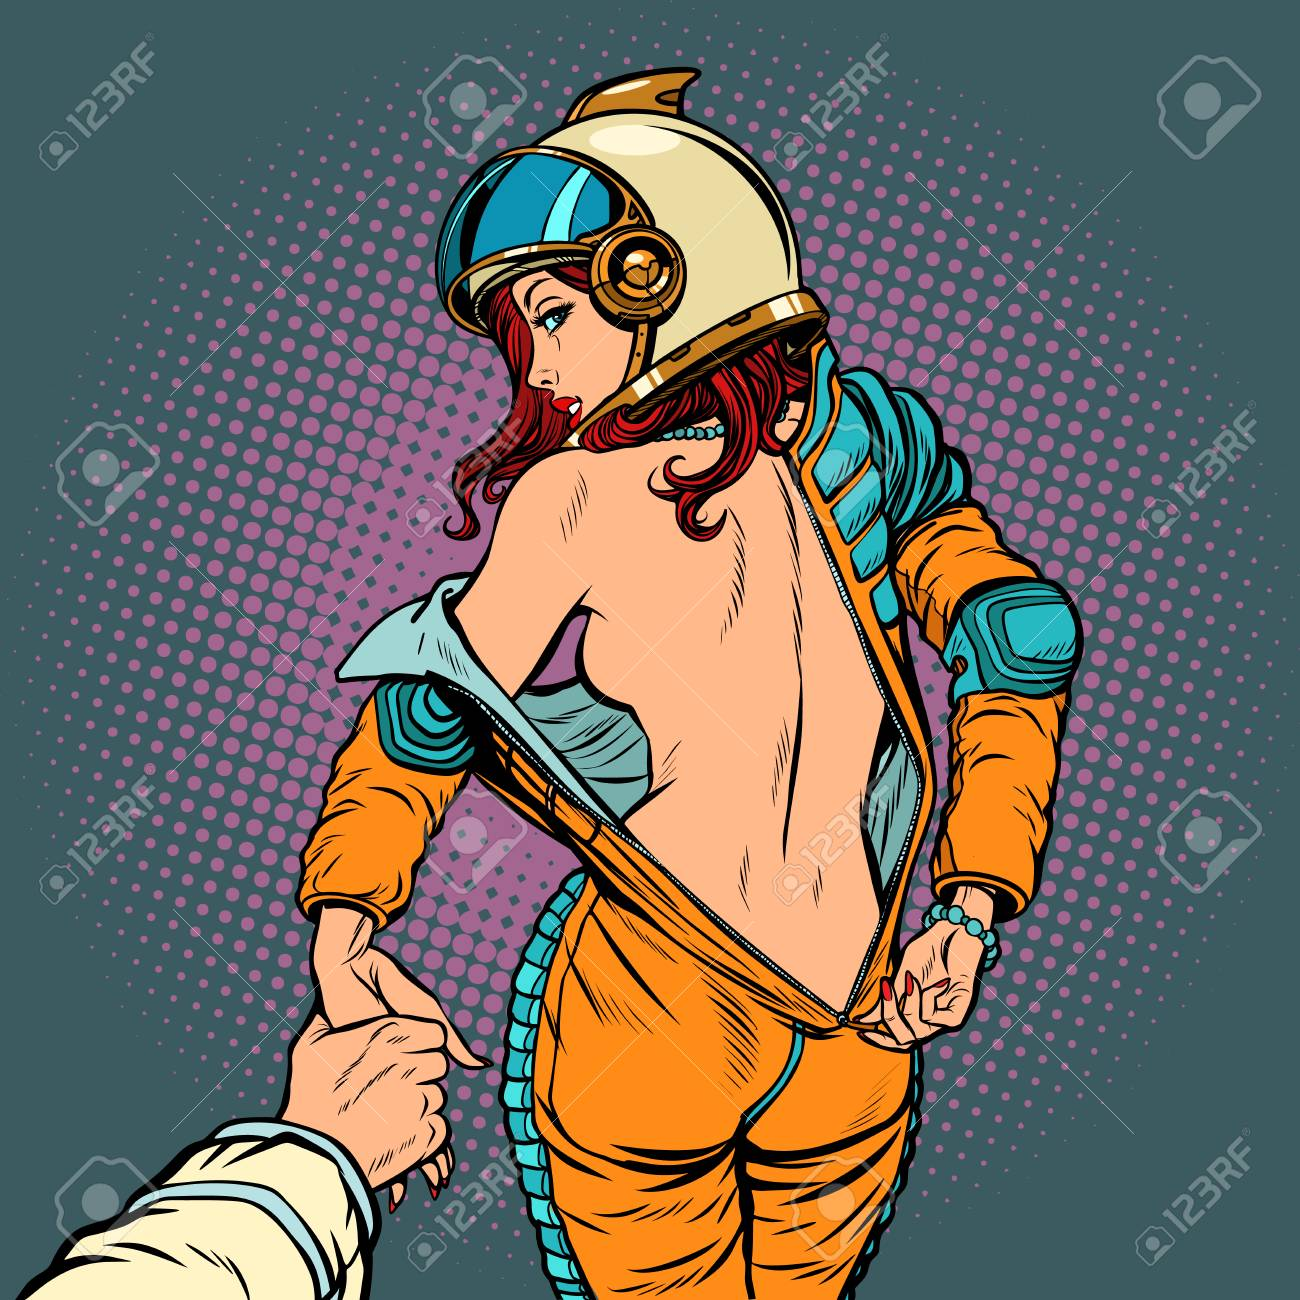 Follow me undresses astronaut woman, couple love and sexy. Pop art retro  comic book